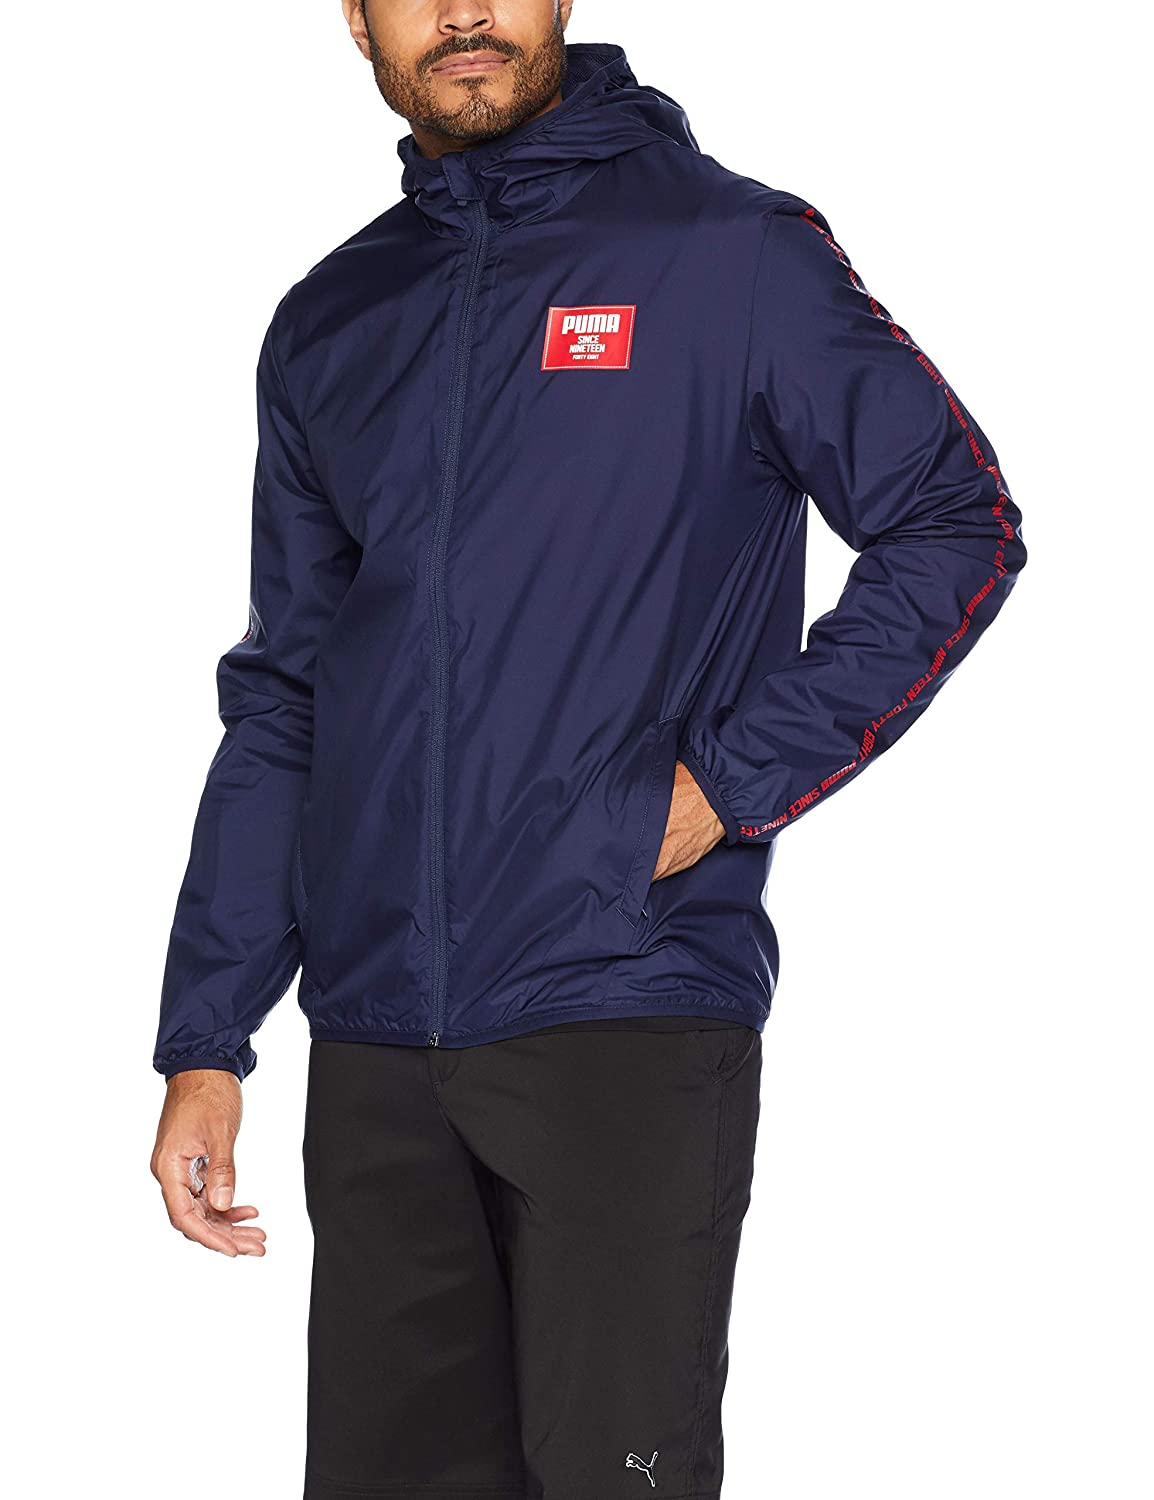 PUMA Mens Standard Graphic Windbreaker